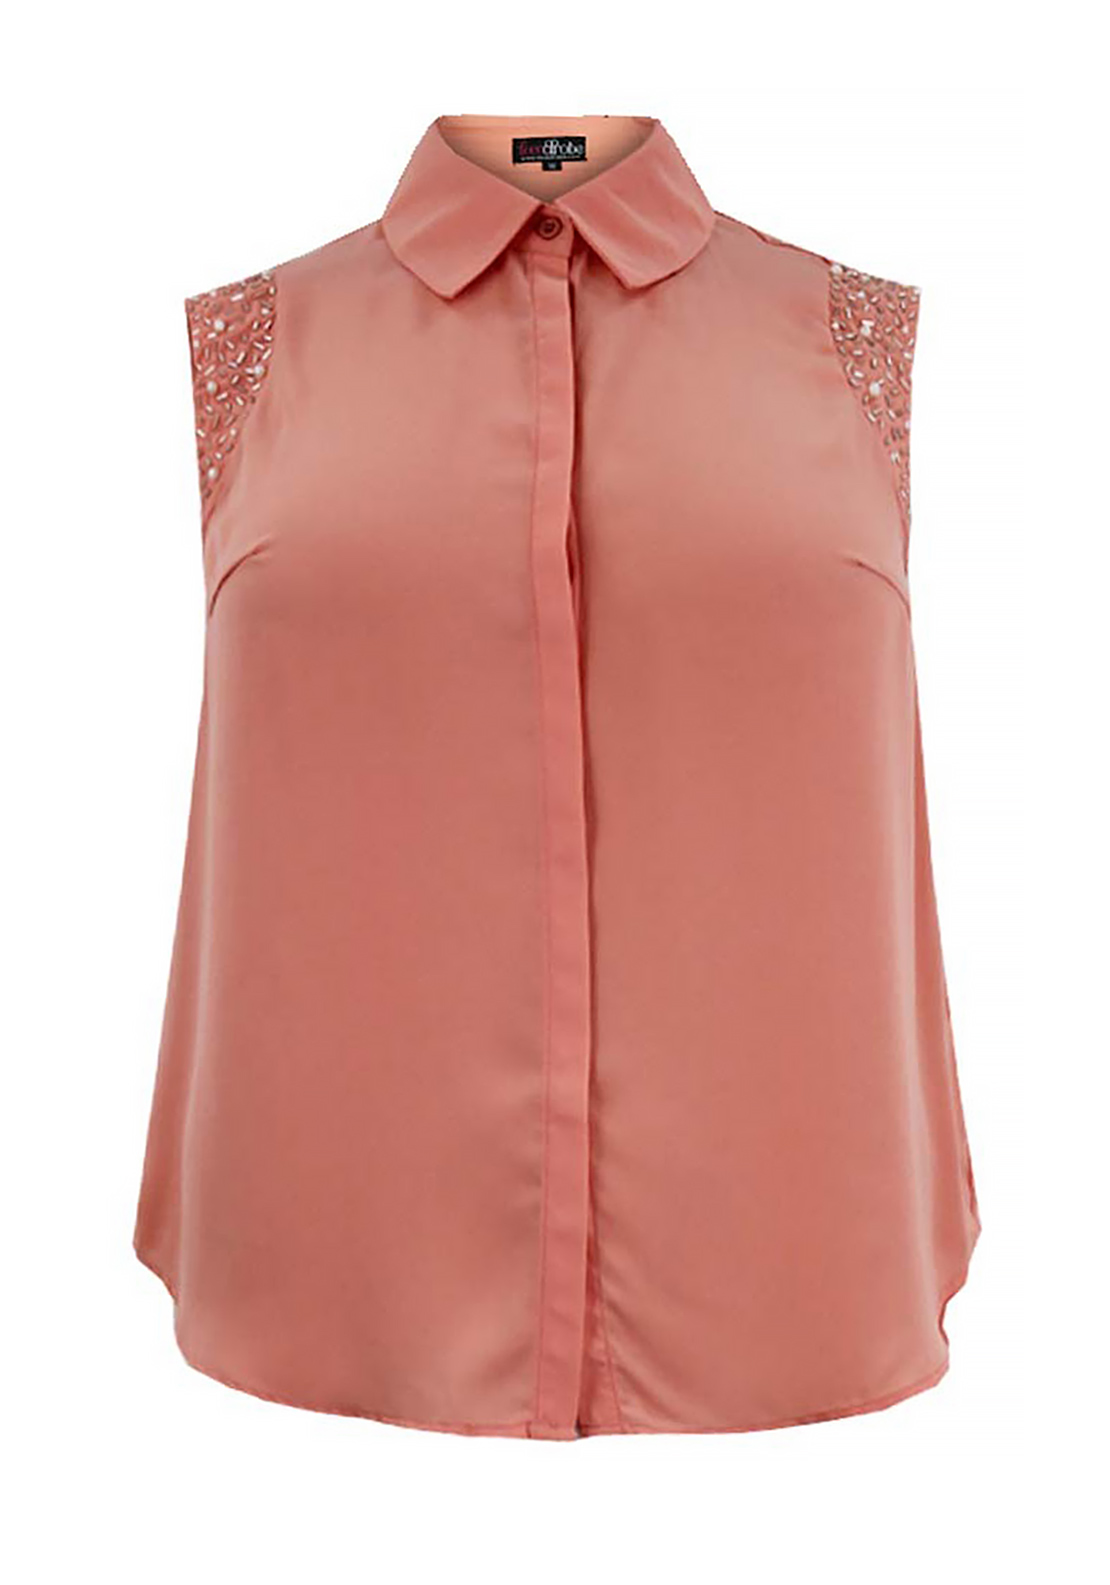 Lovedrobe Sleeveless Embellished Top, Peach